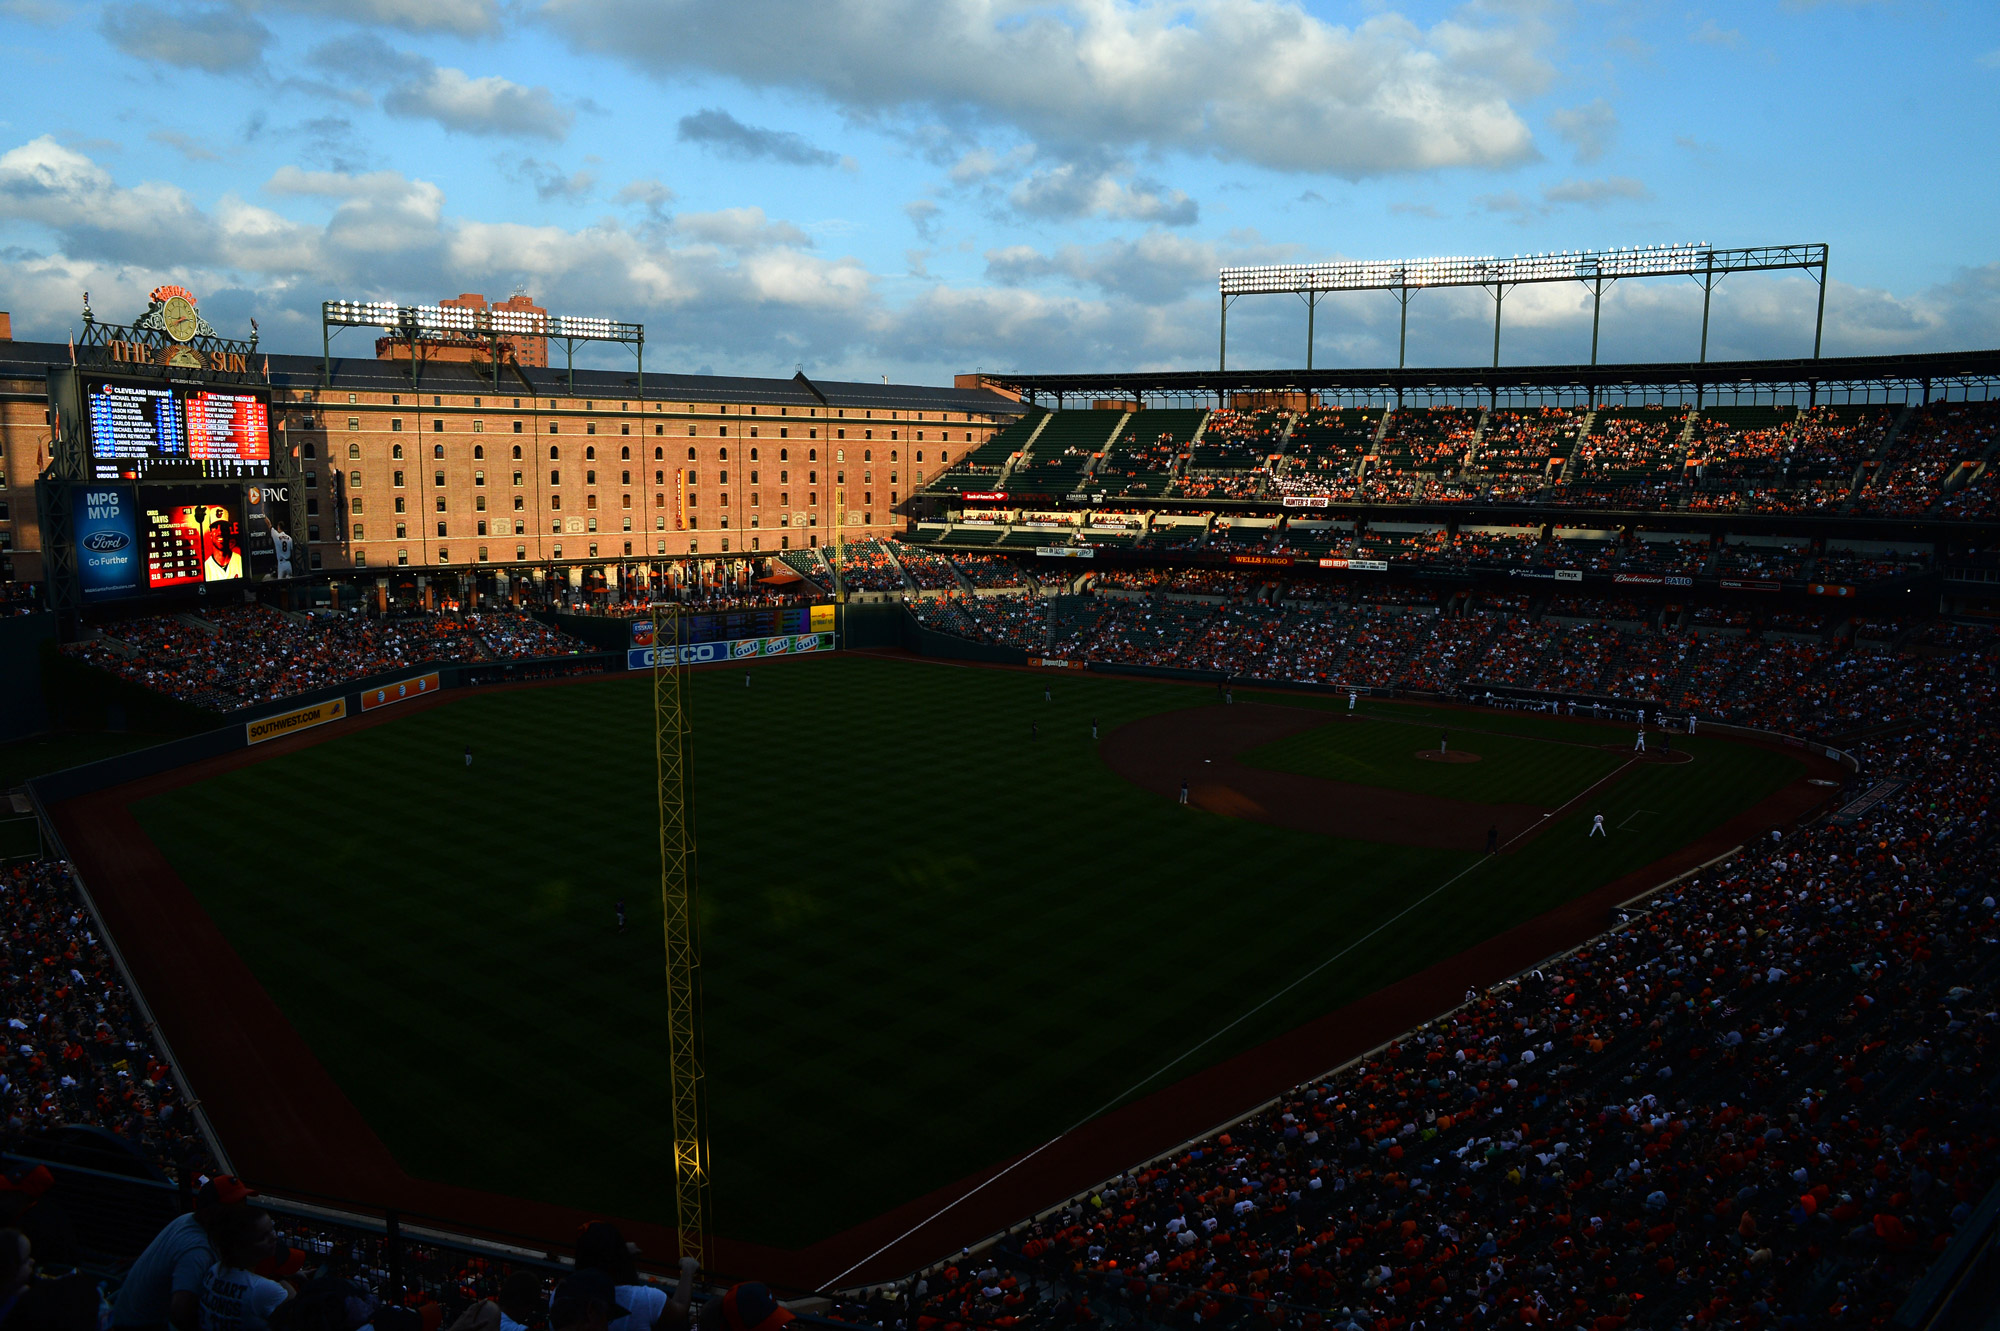 An overview of Oriole Park at Camden Yards is shown during a game between the Baltimore Orioles and the Cleveland Indians on June 27, 2013 in Baltimore, Md.